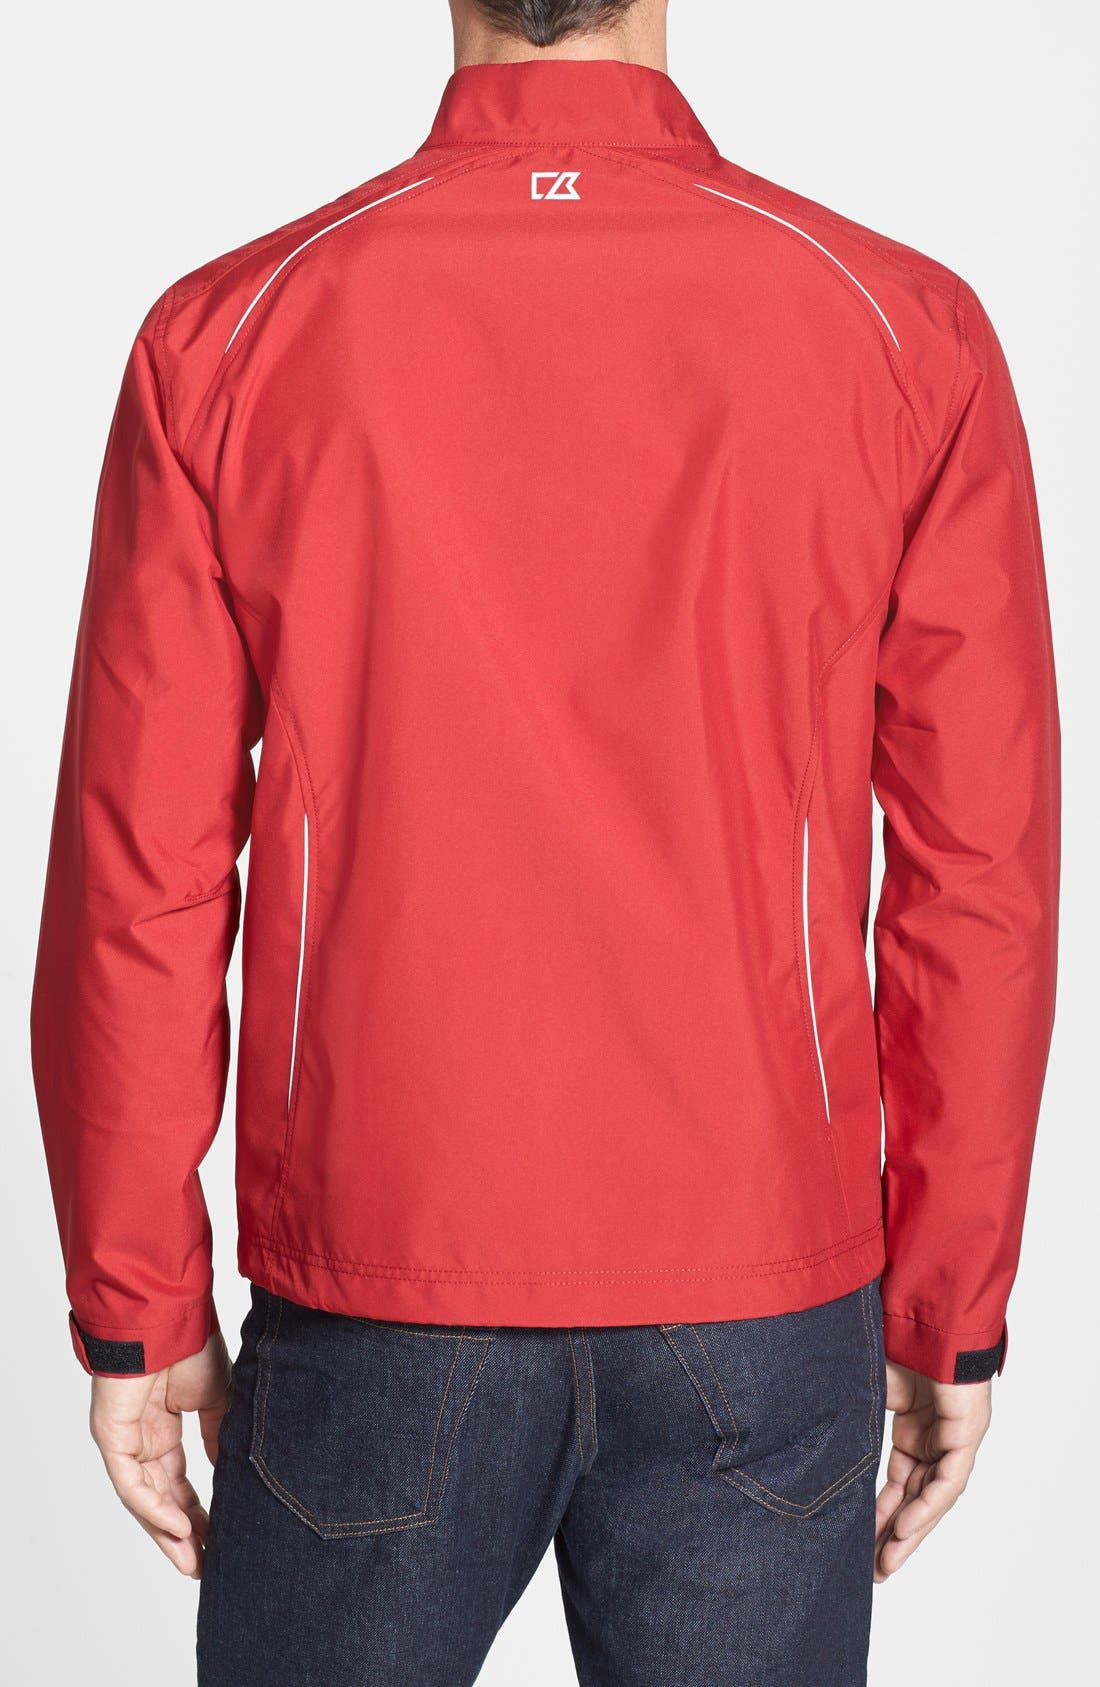 San Francisco 49ers - Beacon WeatherTec Wind & Water Resistant Jacket,                             Alternate thumbnail 2, color,                             613